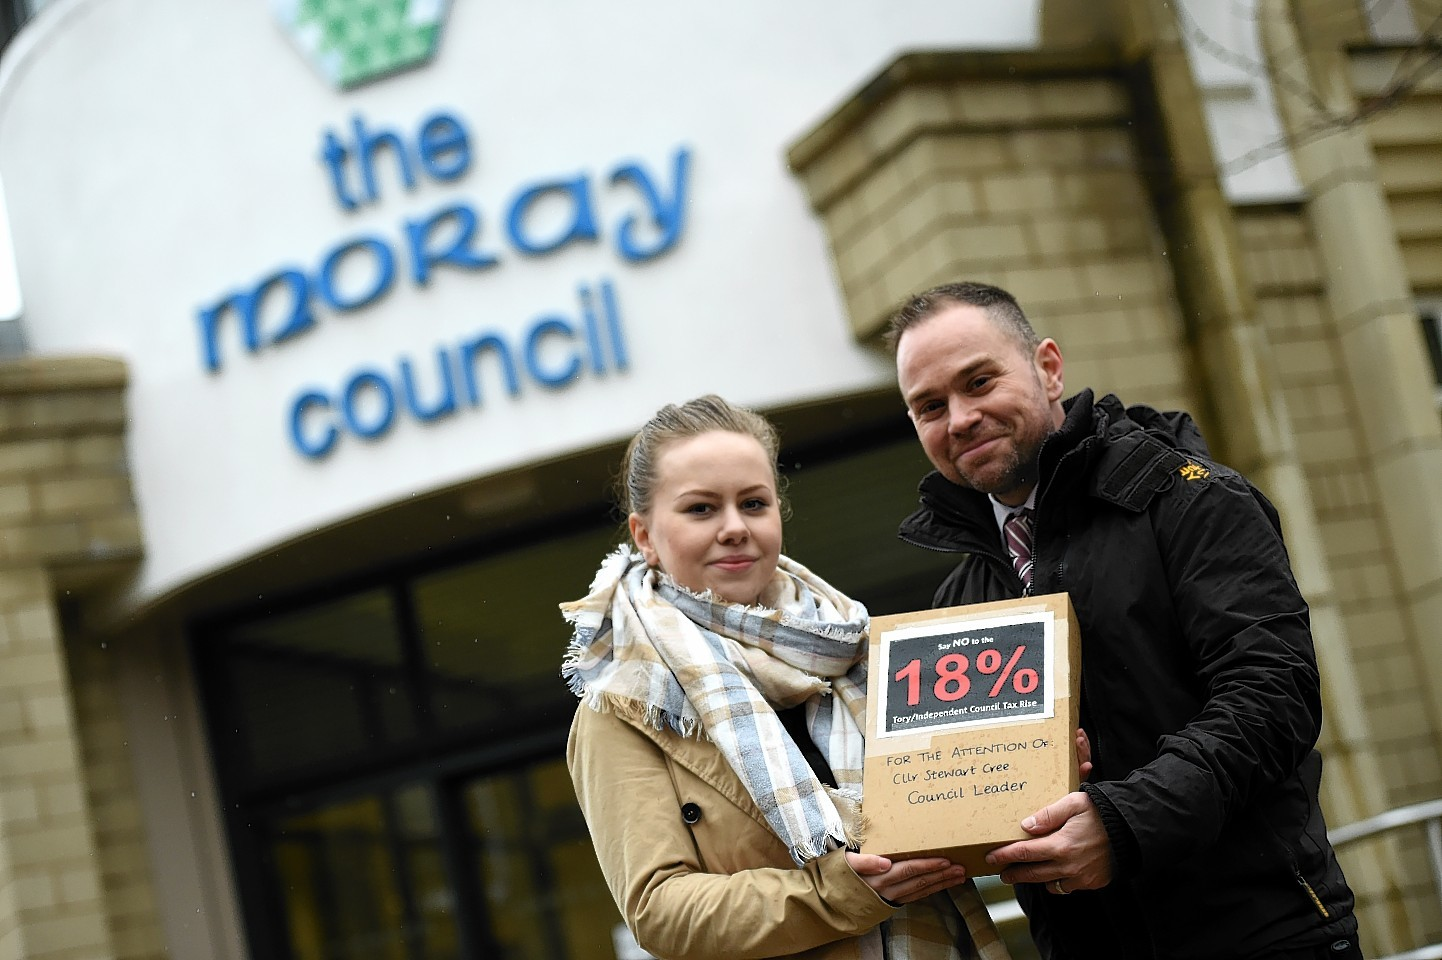 Jo-Ann De-Sykes, and James O'Connor, with the petition against the raising of Council Tax in Moray